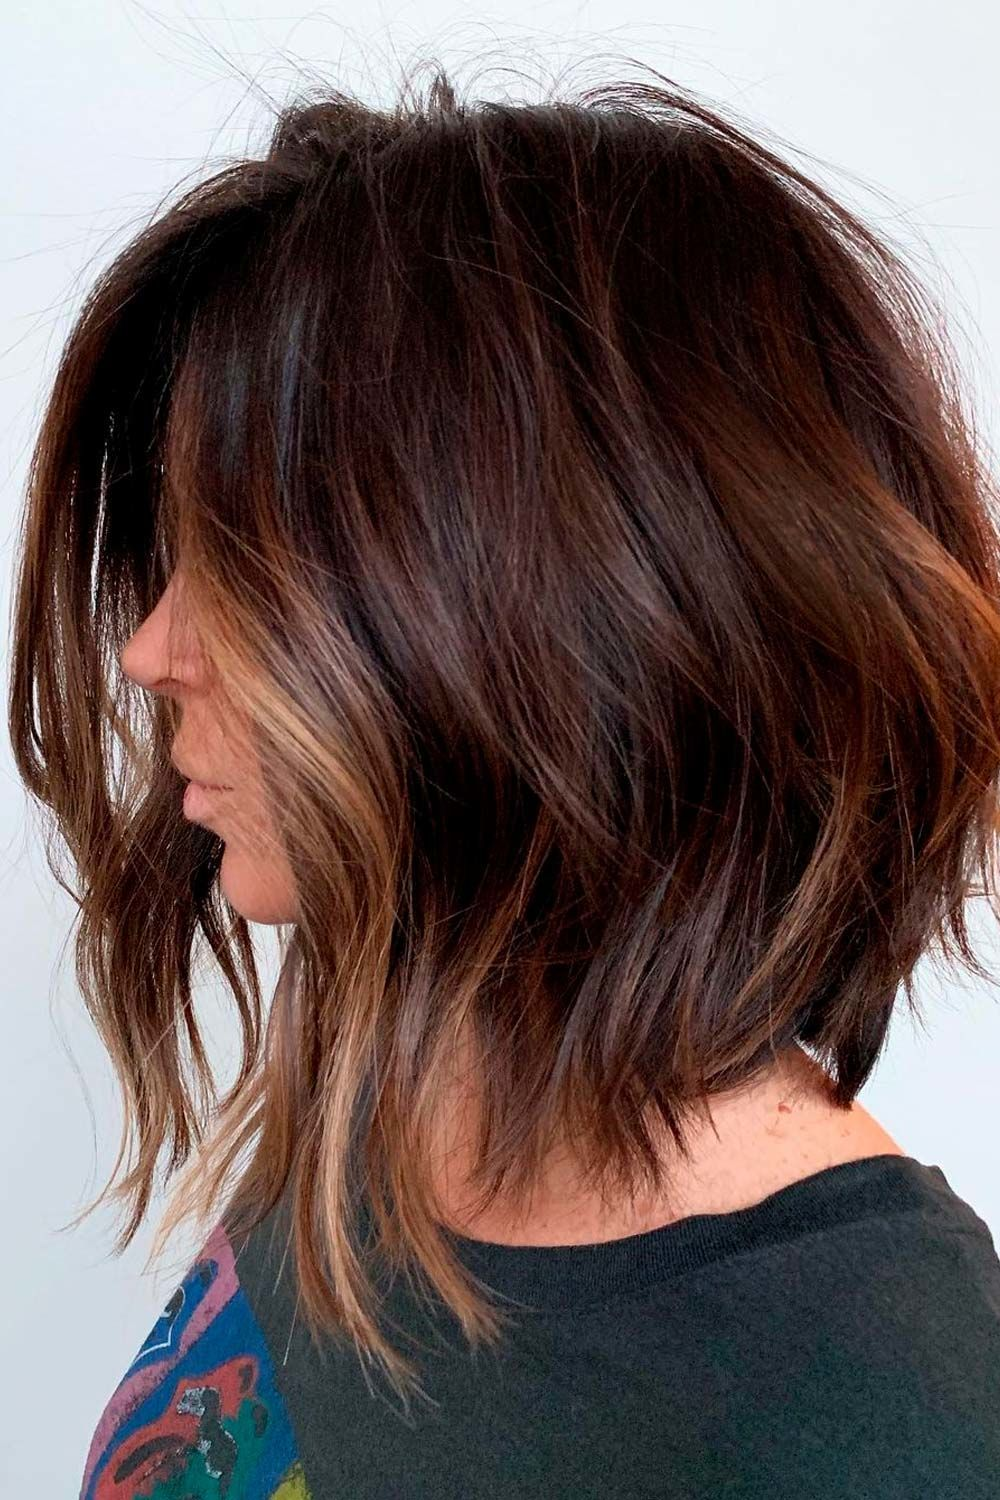 Latest Spring Hair Colors Trends For 2021 In 2021 Spring Hair Color Spring Hairstyles Spring Hair Color Trends